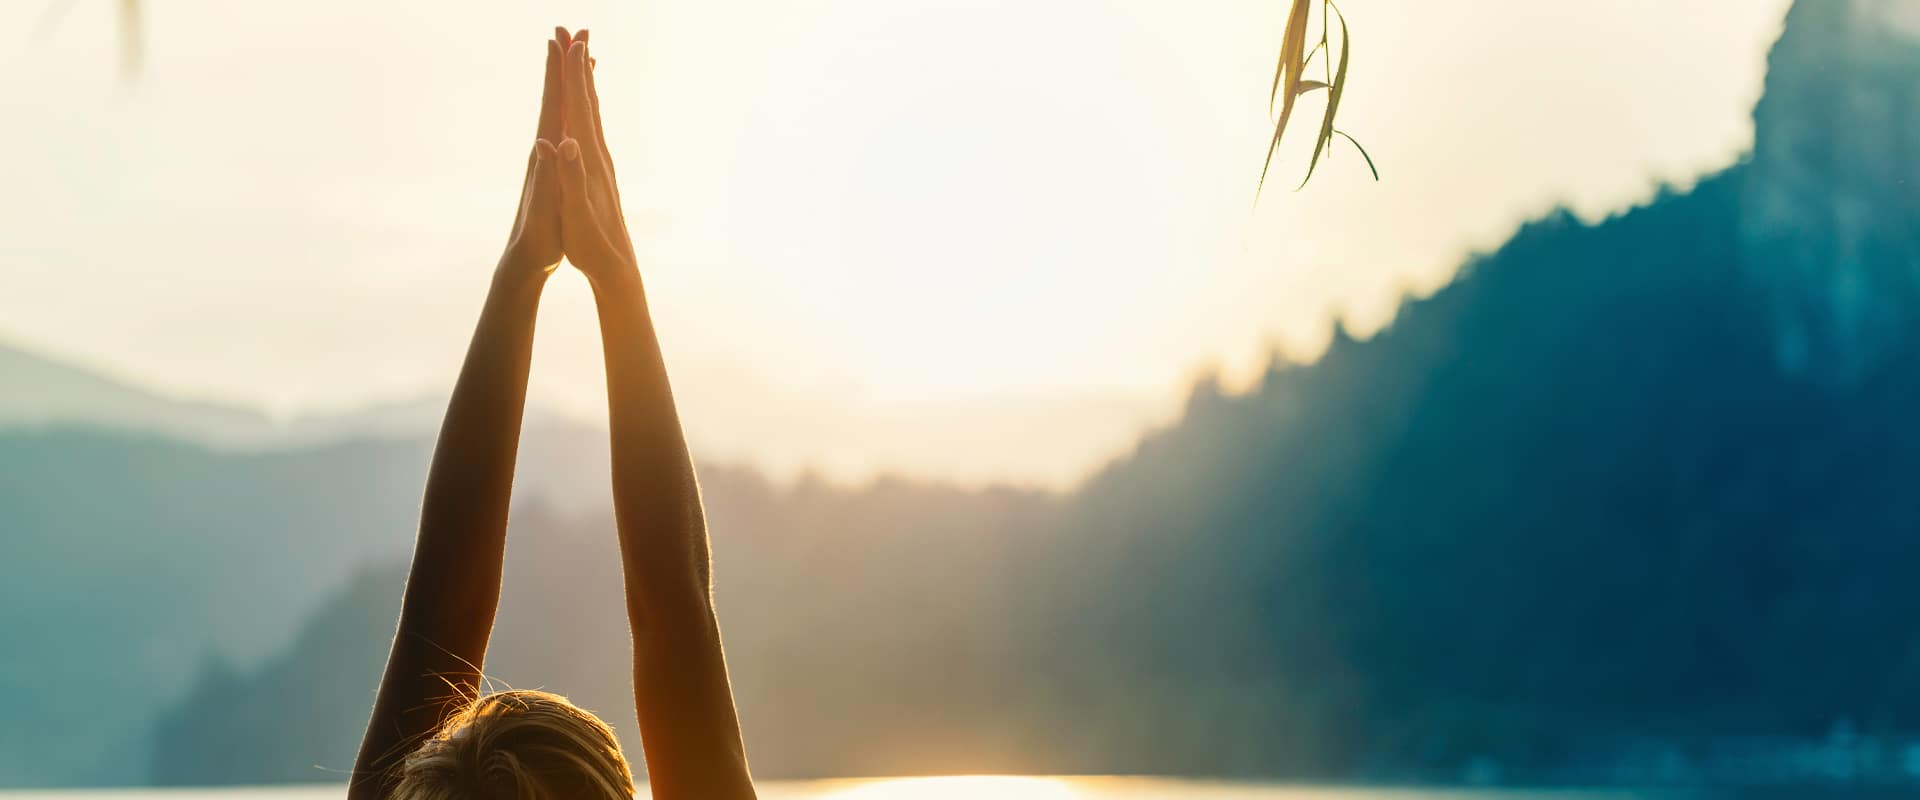 Start the day saluting the sun with some yoga stretches